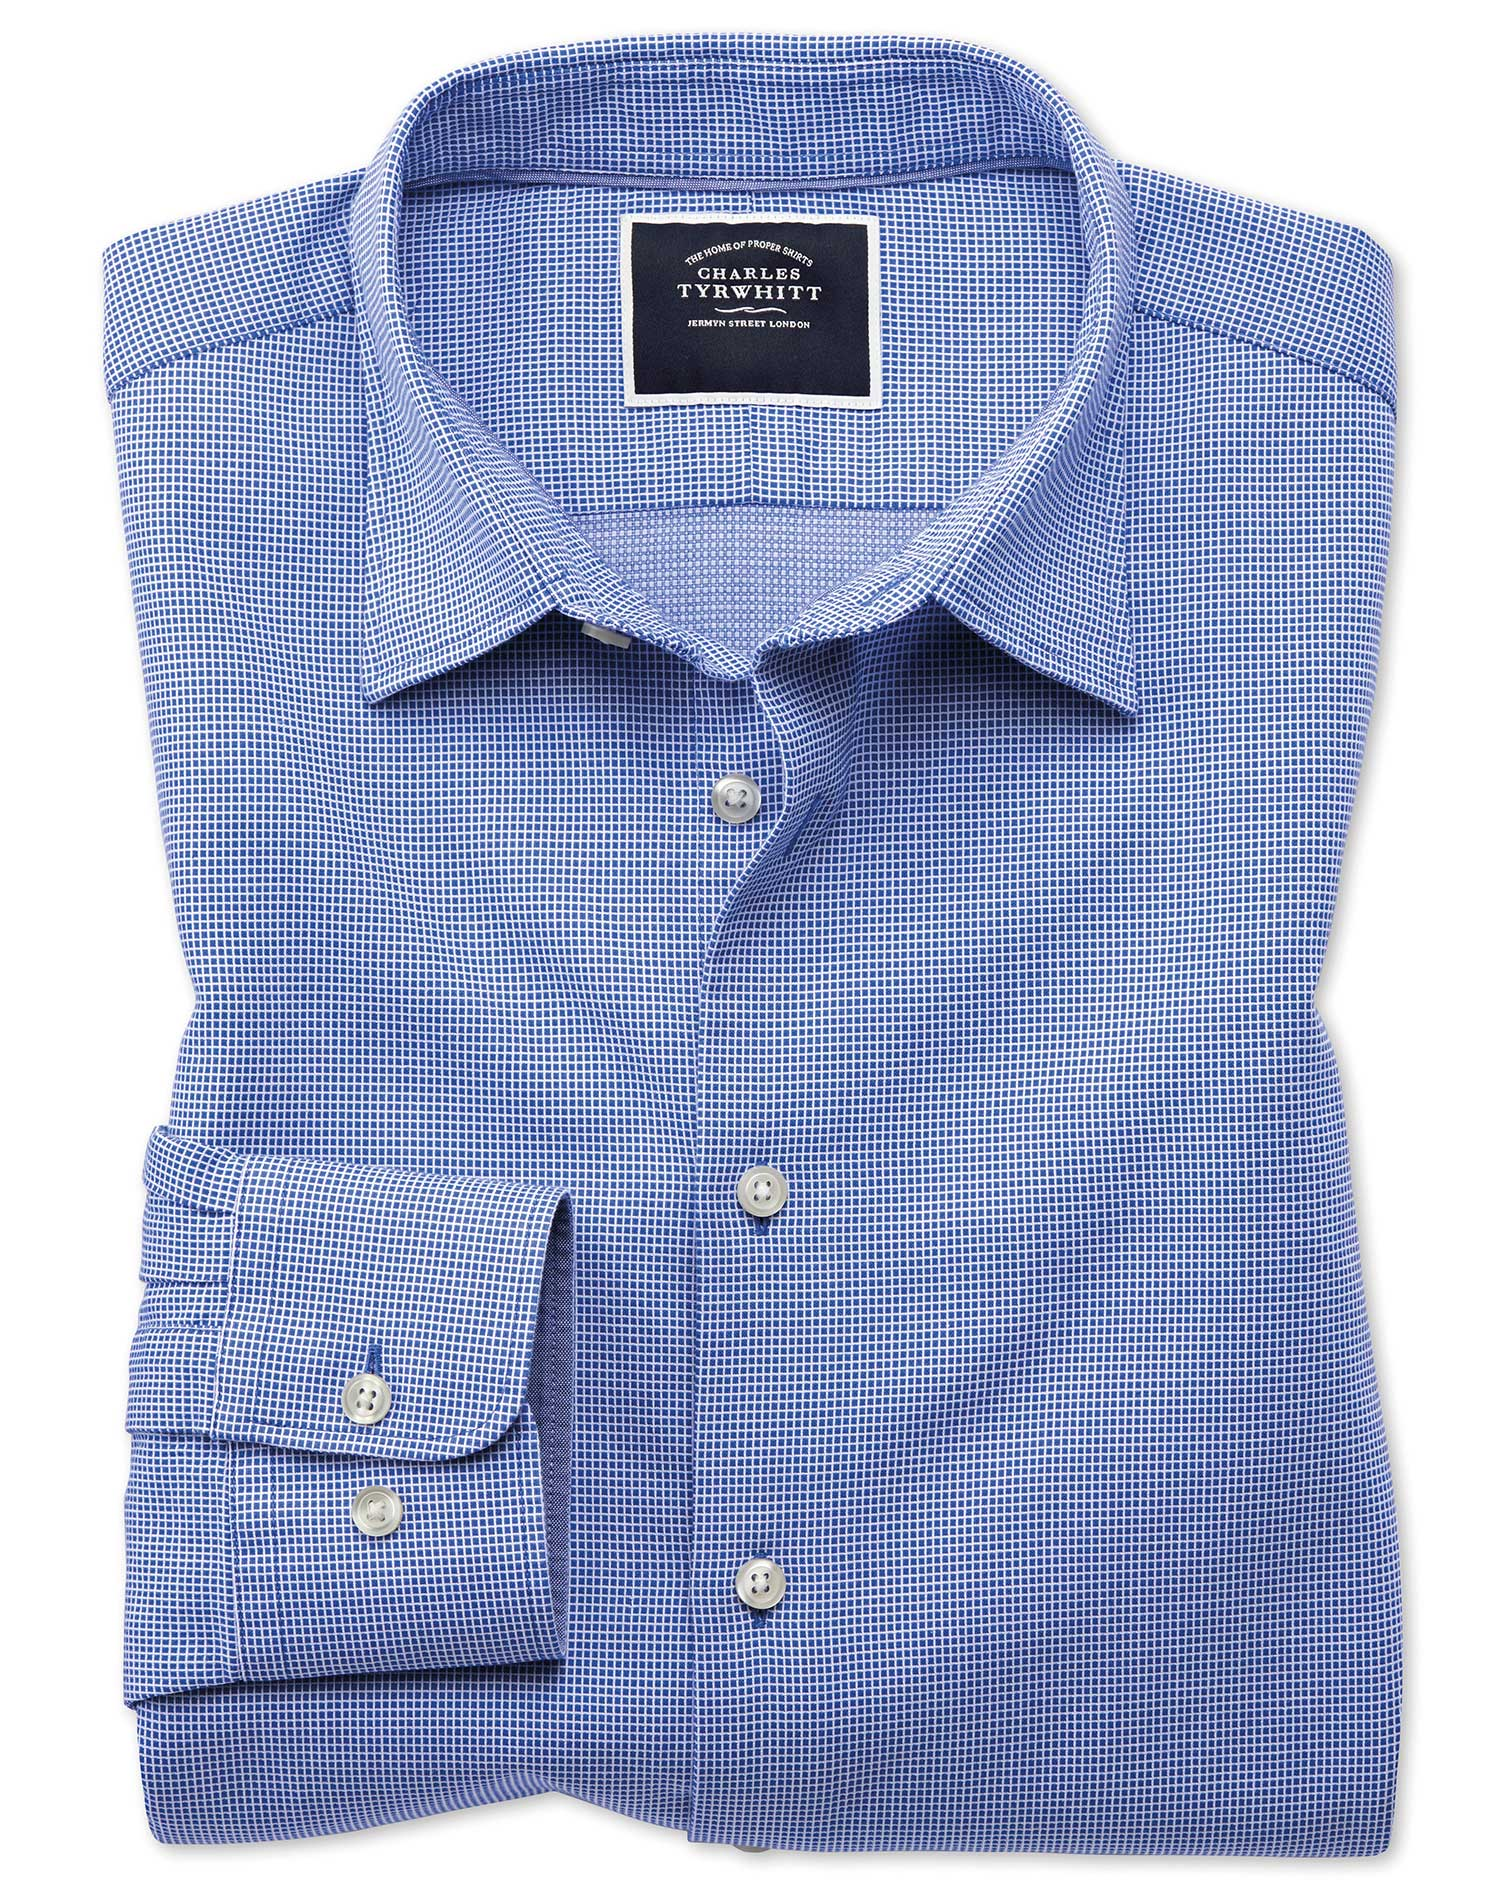 Classic Fit Royal Blue Micro Check Soft Texture Cotton Shirt Single Cuff Size Medium by Charles Tyrw